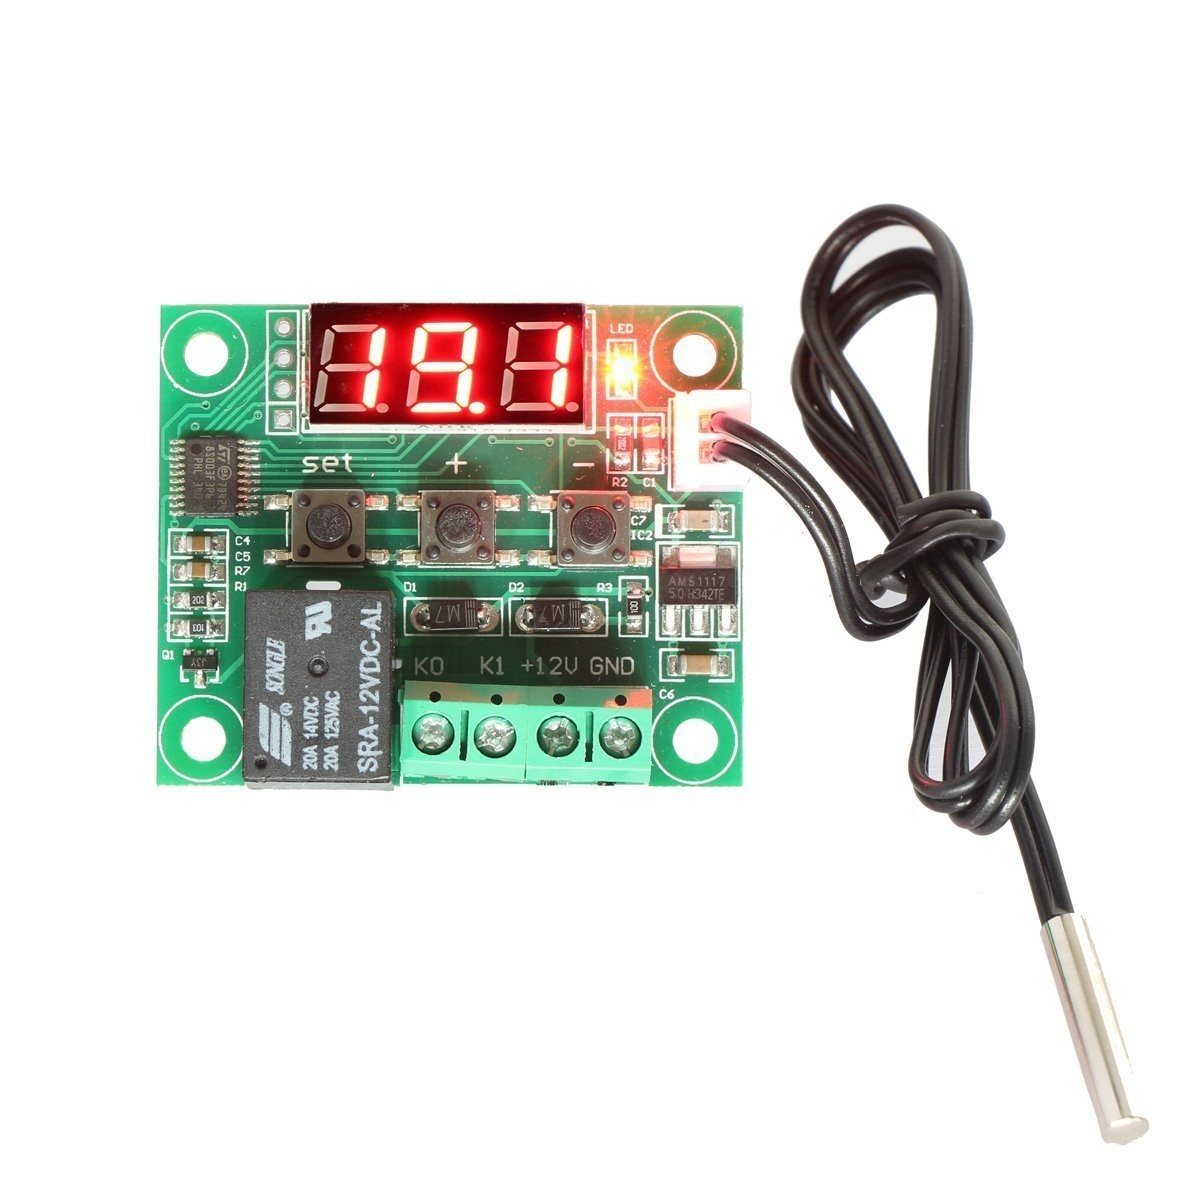 RioRand 12V DC Digital Cooling/Heating Thermostat Temp